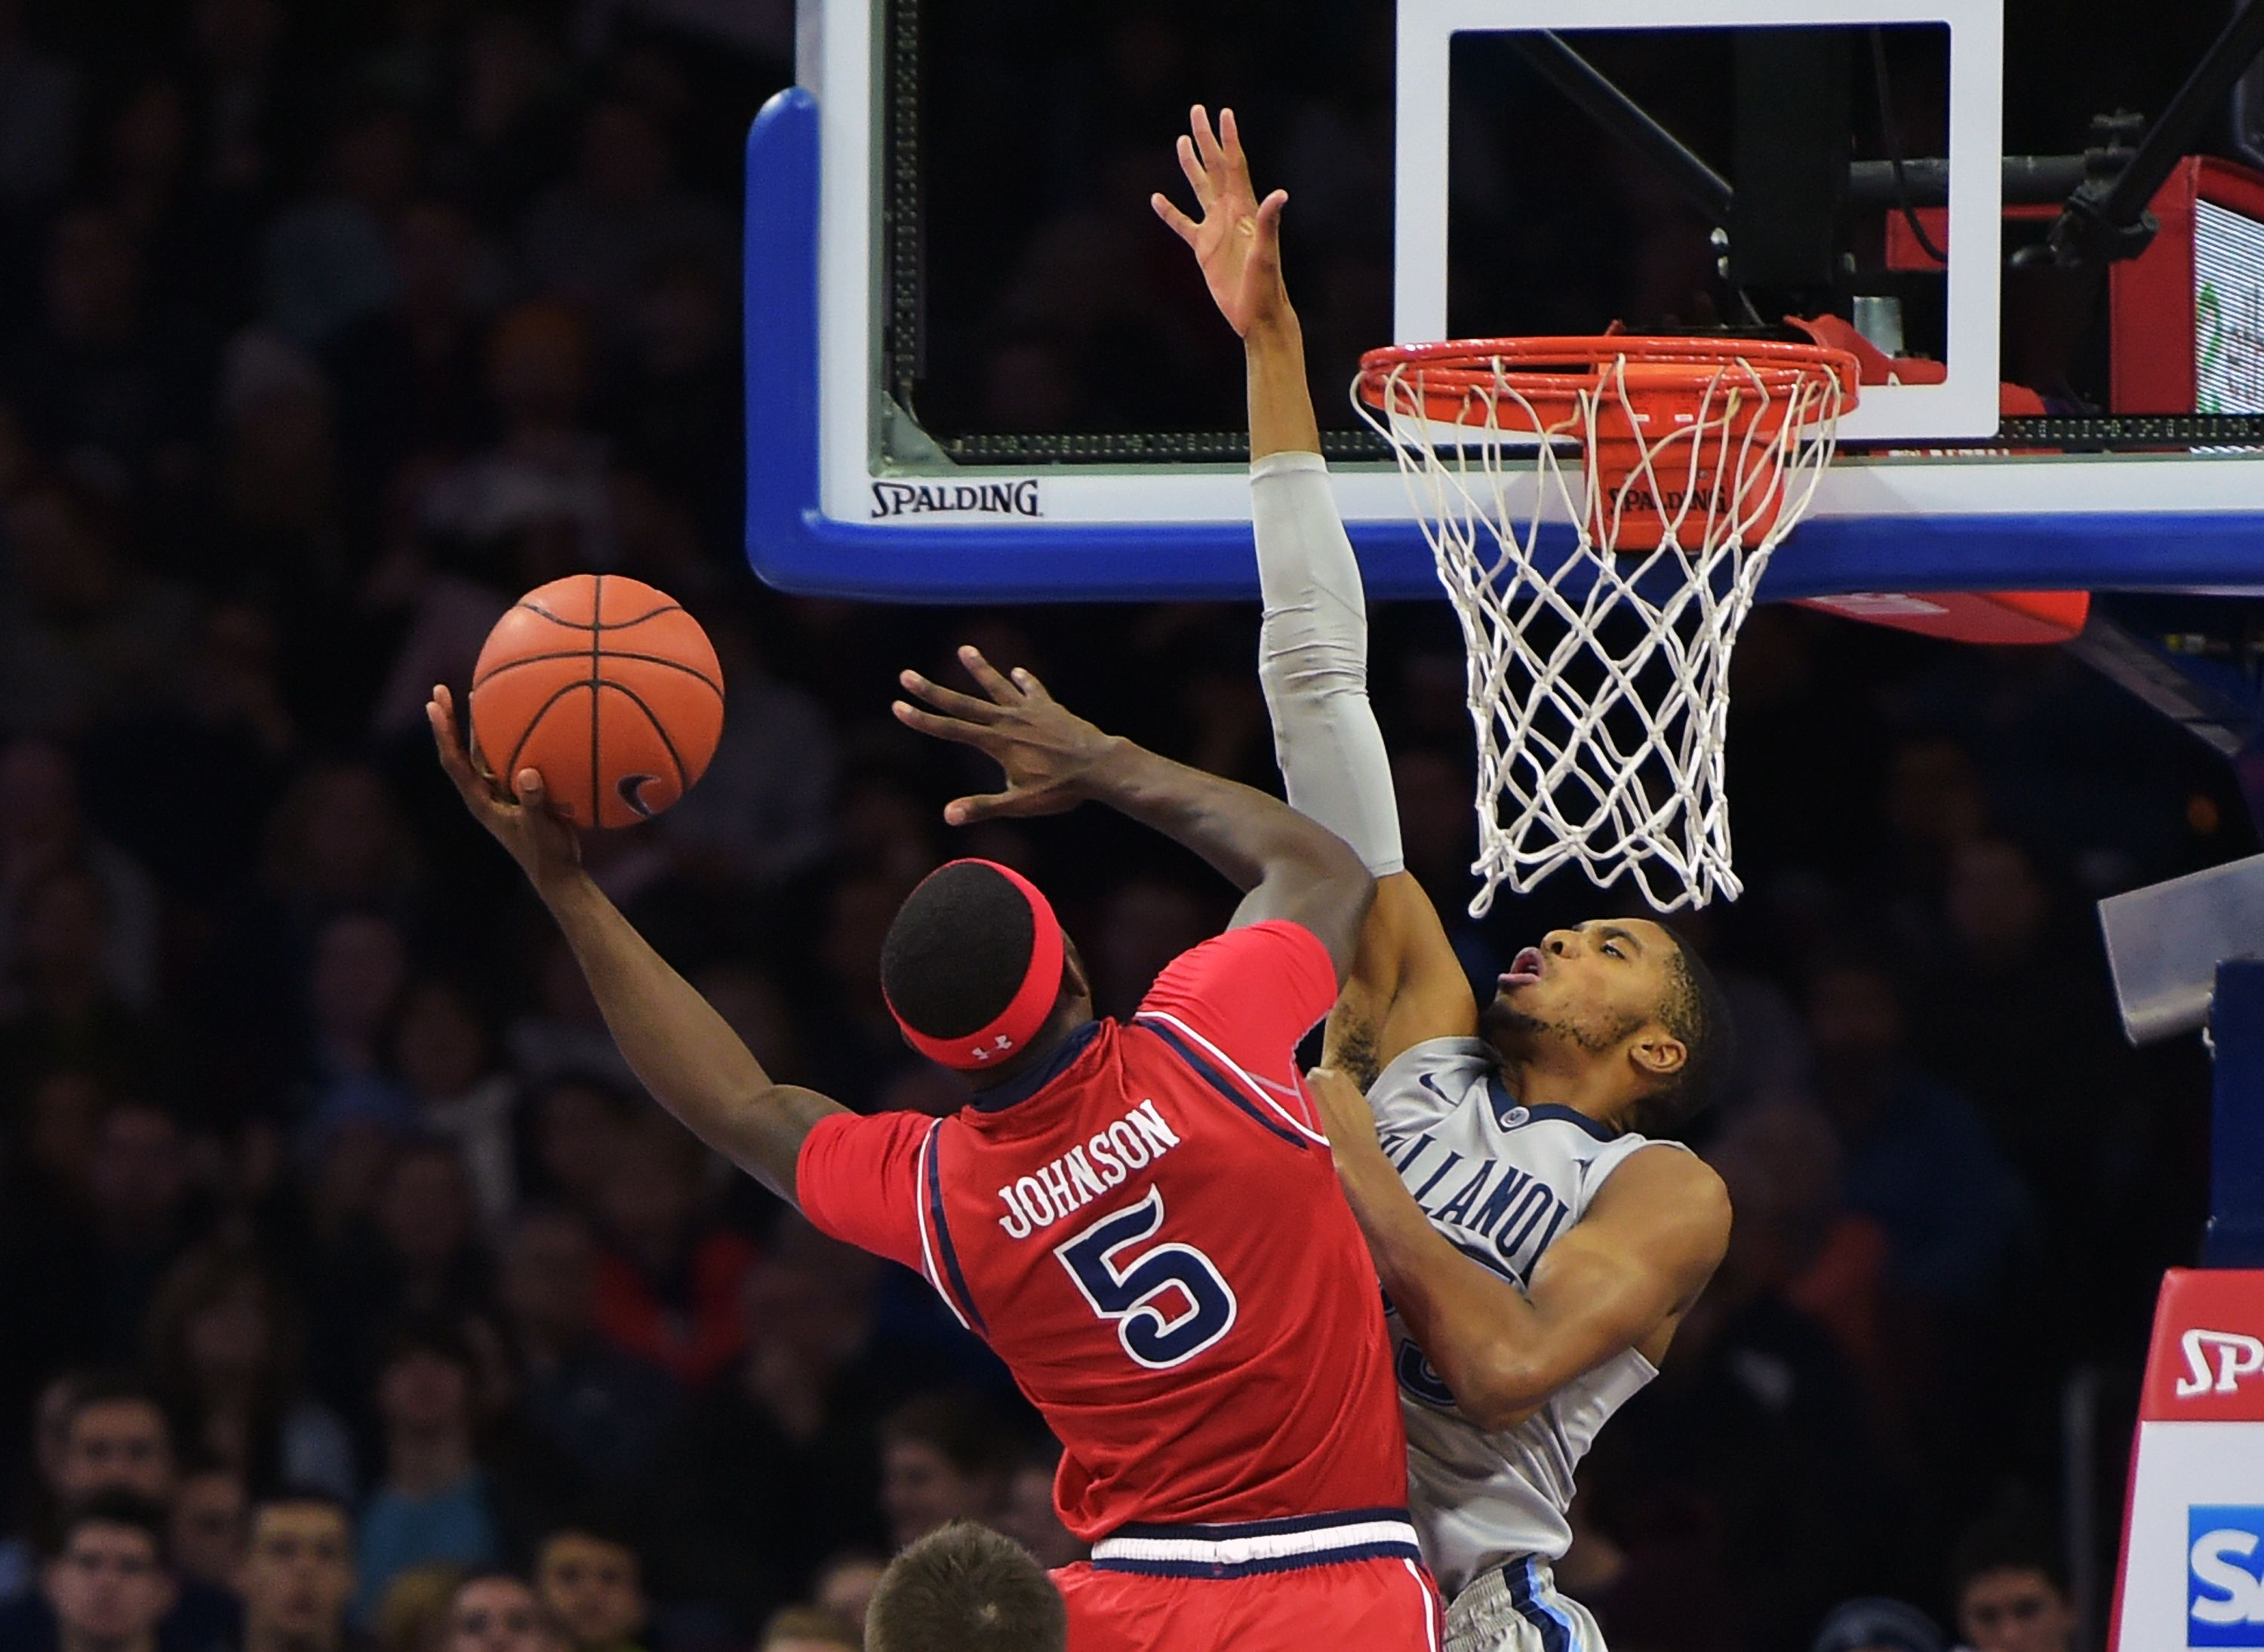 Biggest Differences Between Ncaa And Nba Basketball